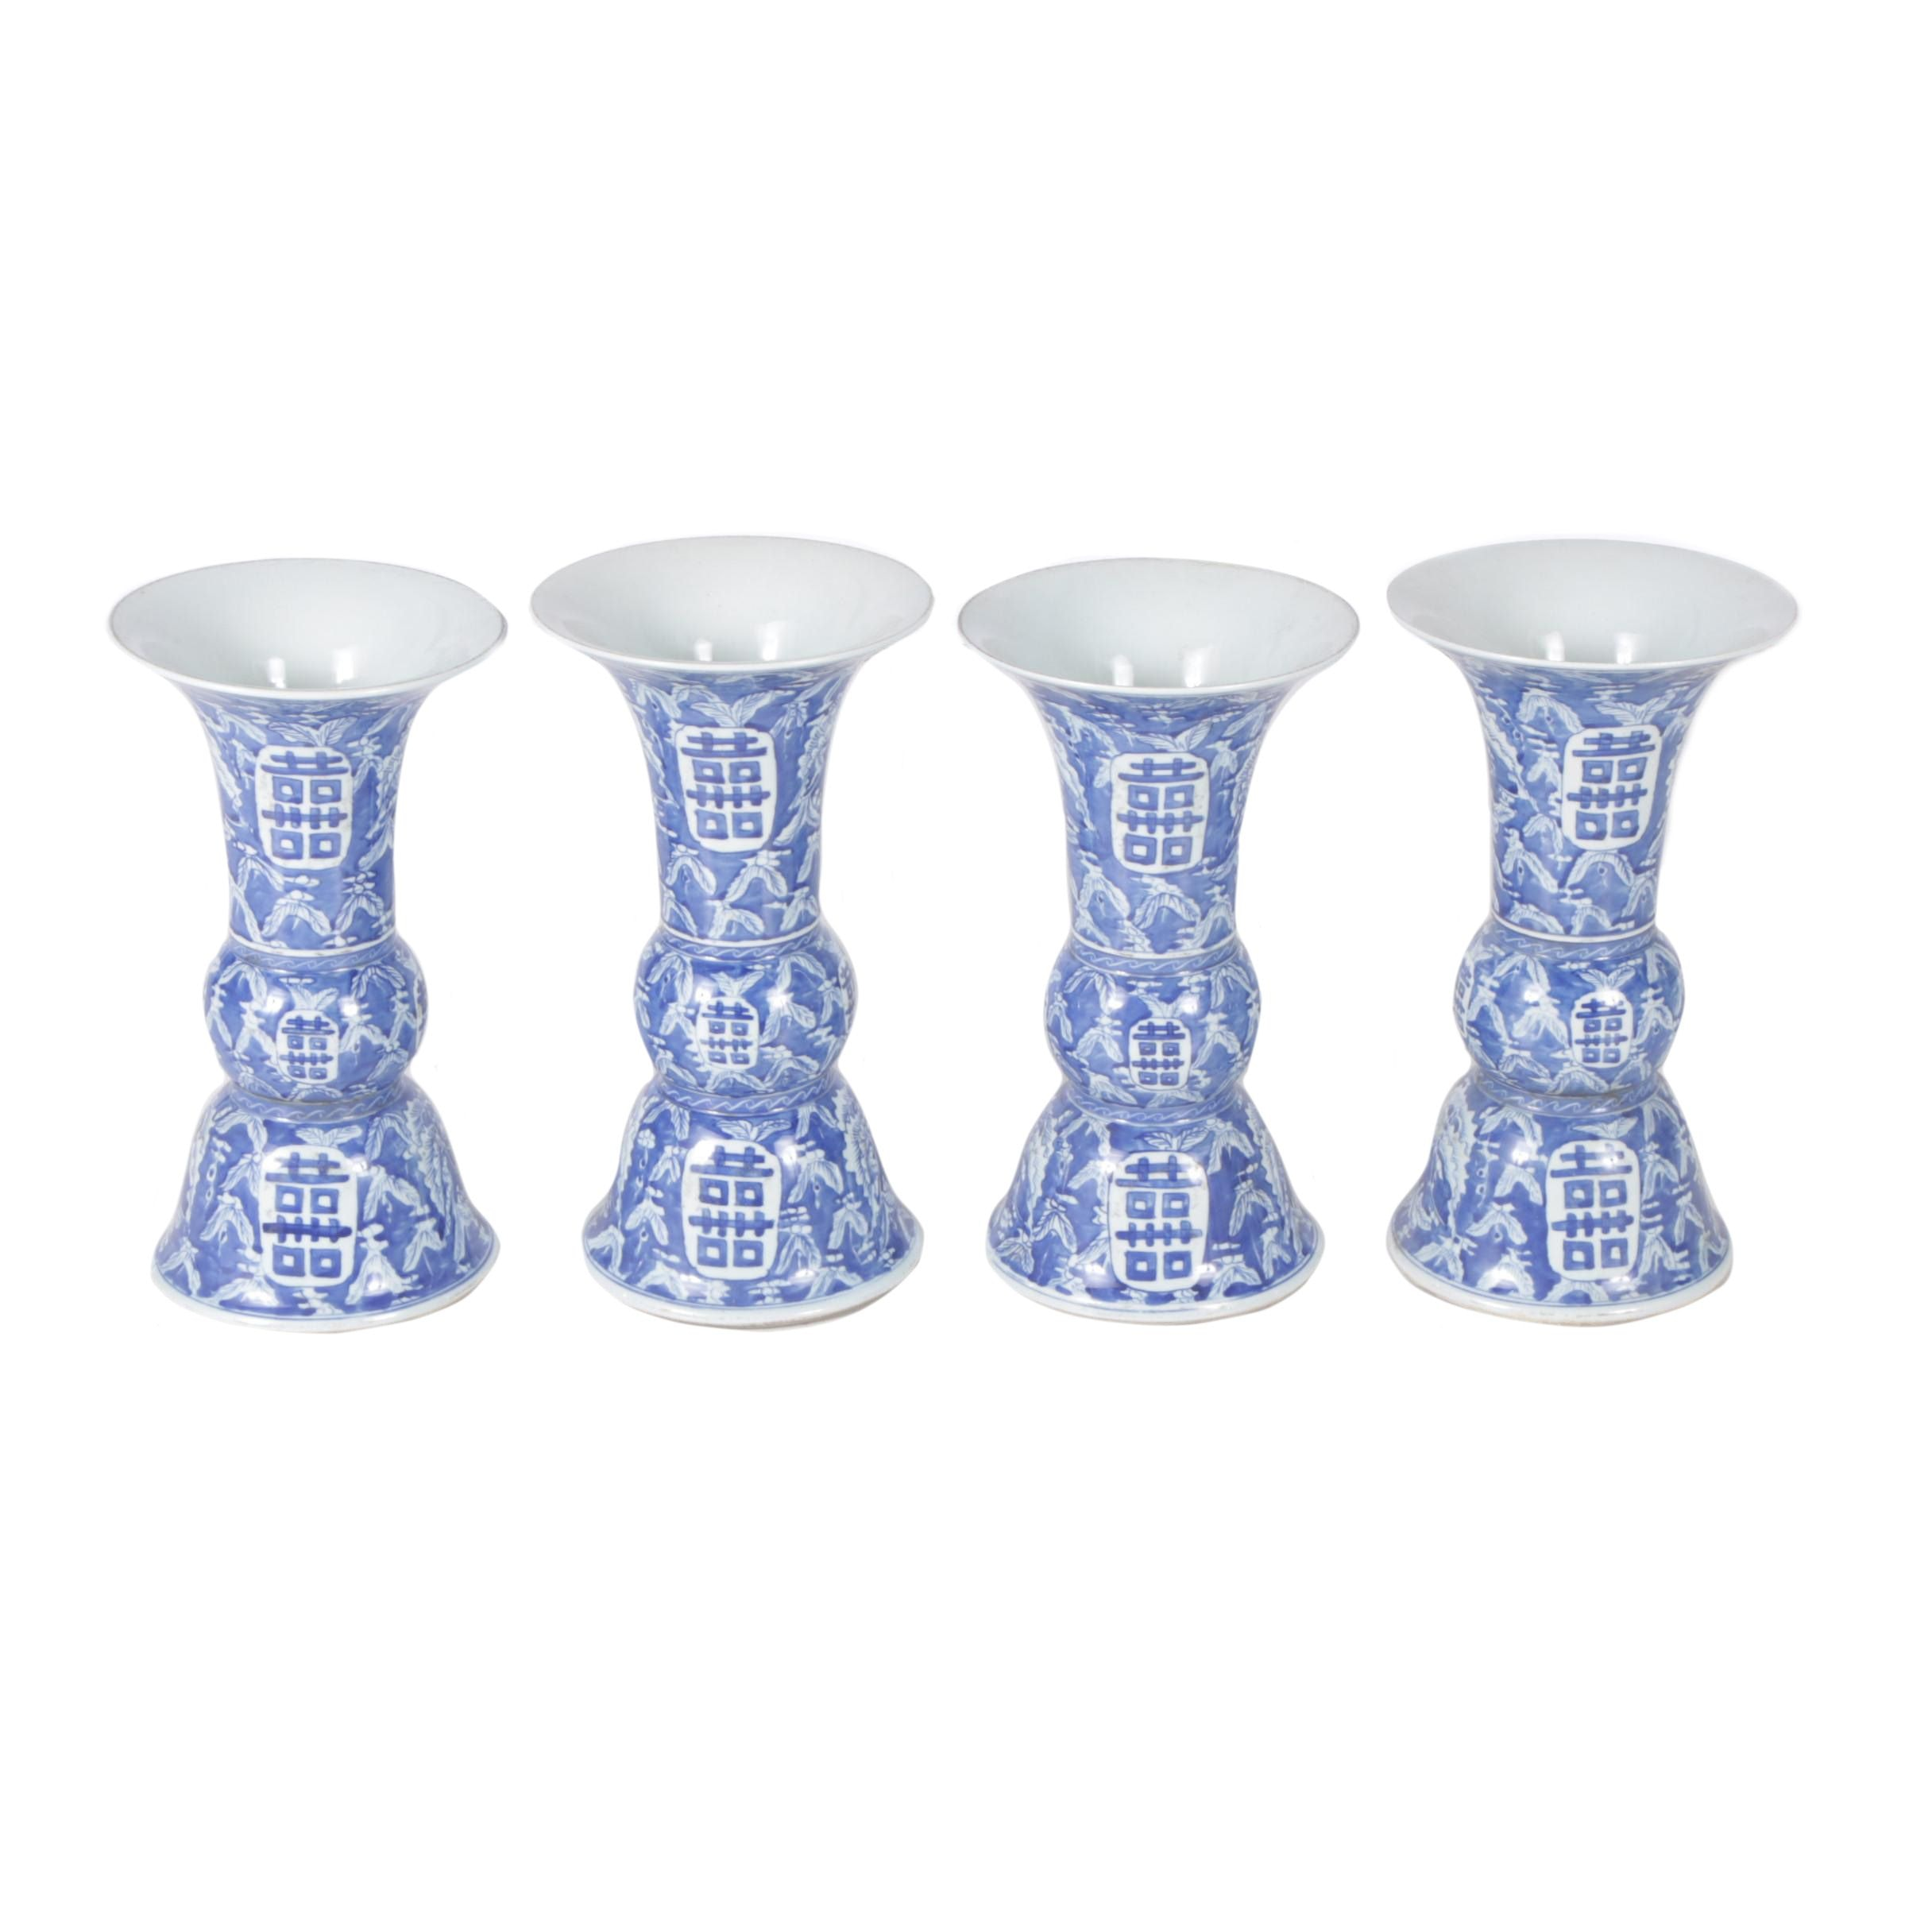 Chinese Blue and White Double Happiness Gu-Shaped Ceramic Vases